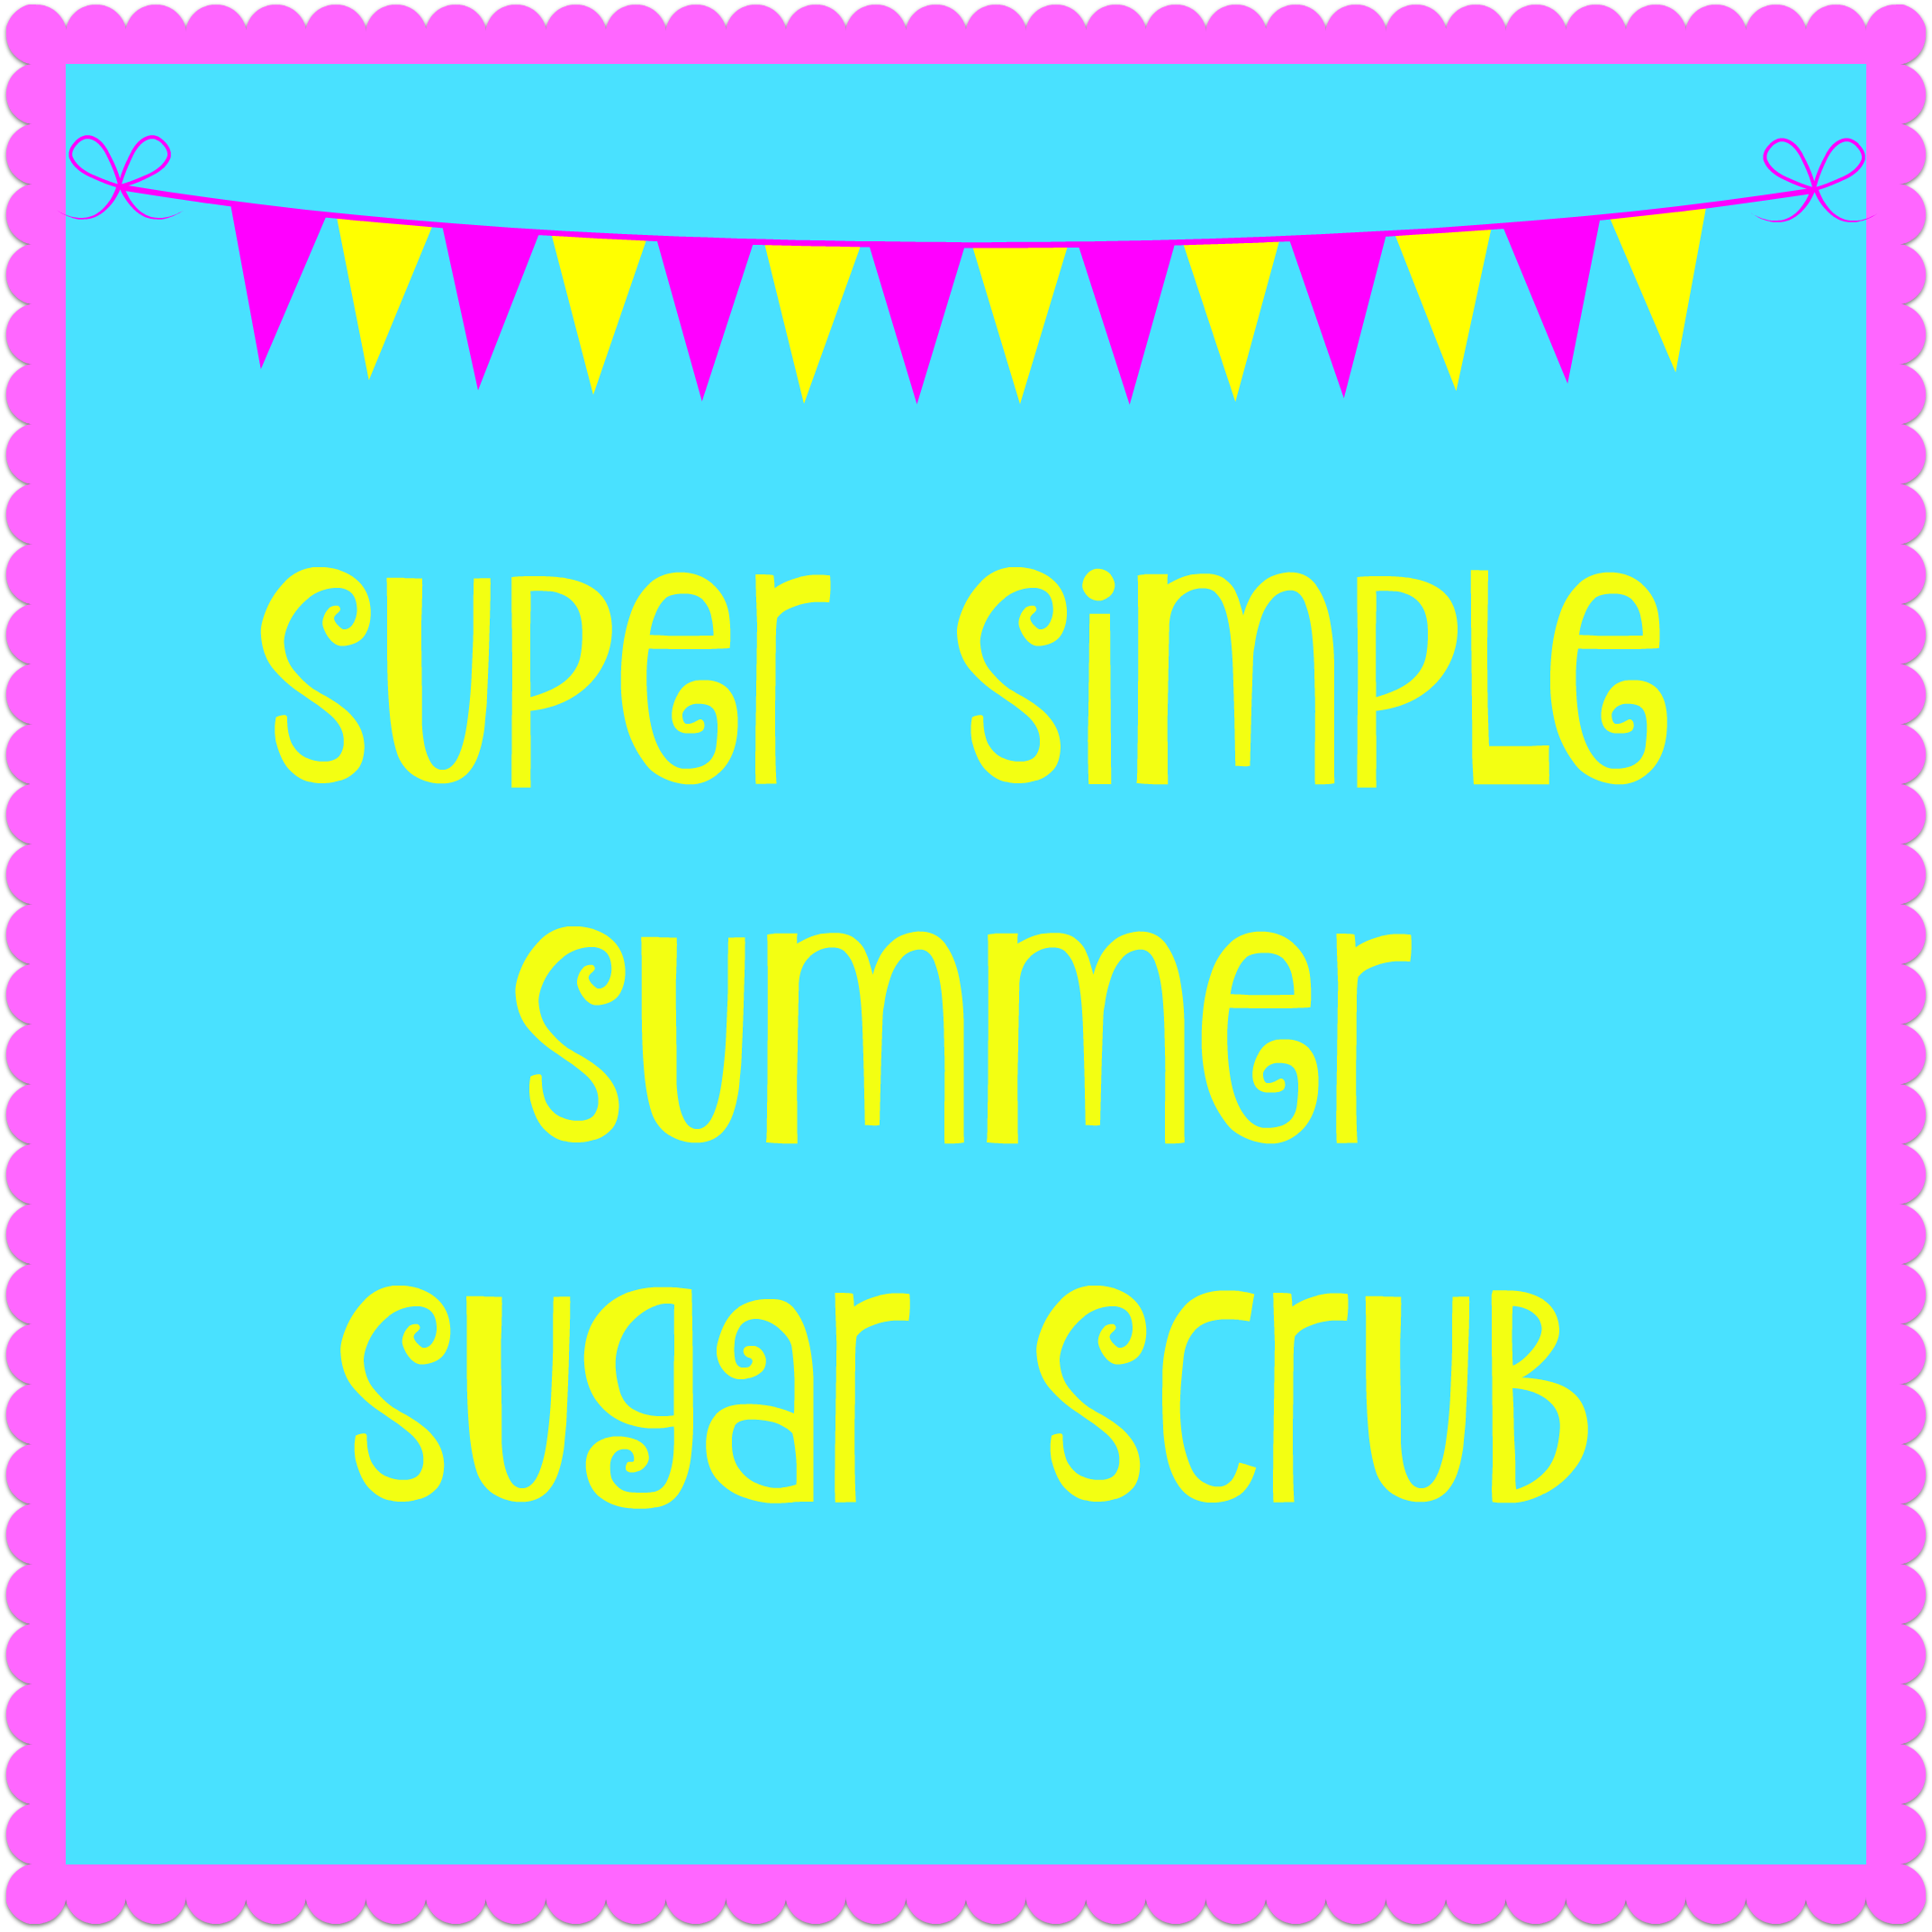 sugarscrubfeature